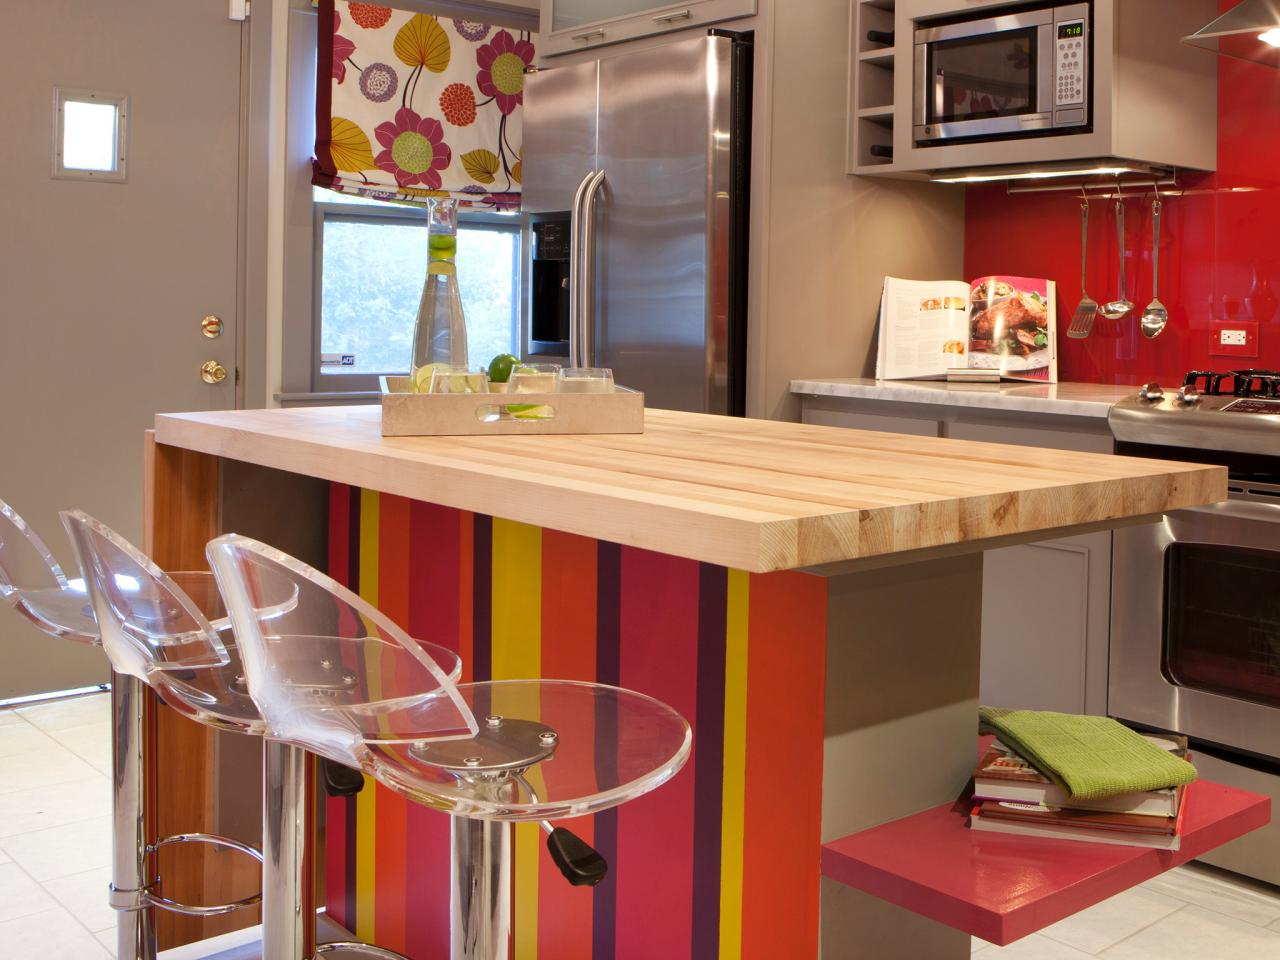 Kitchen island breakfast bar pictures ideas from hgtv for Kitchen color planner